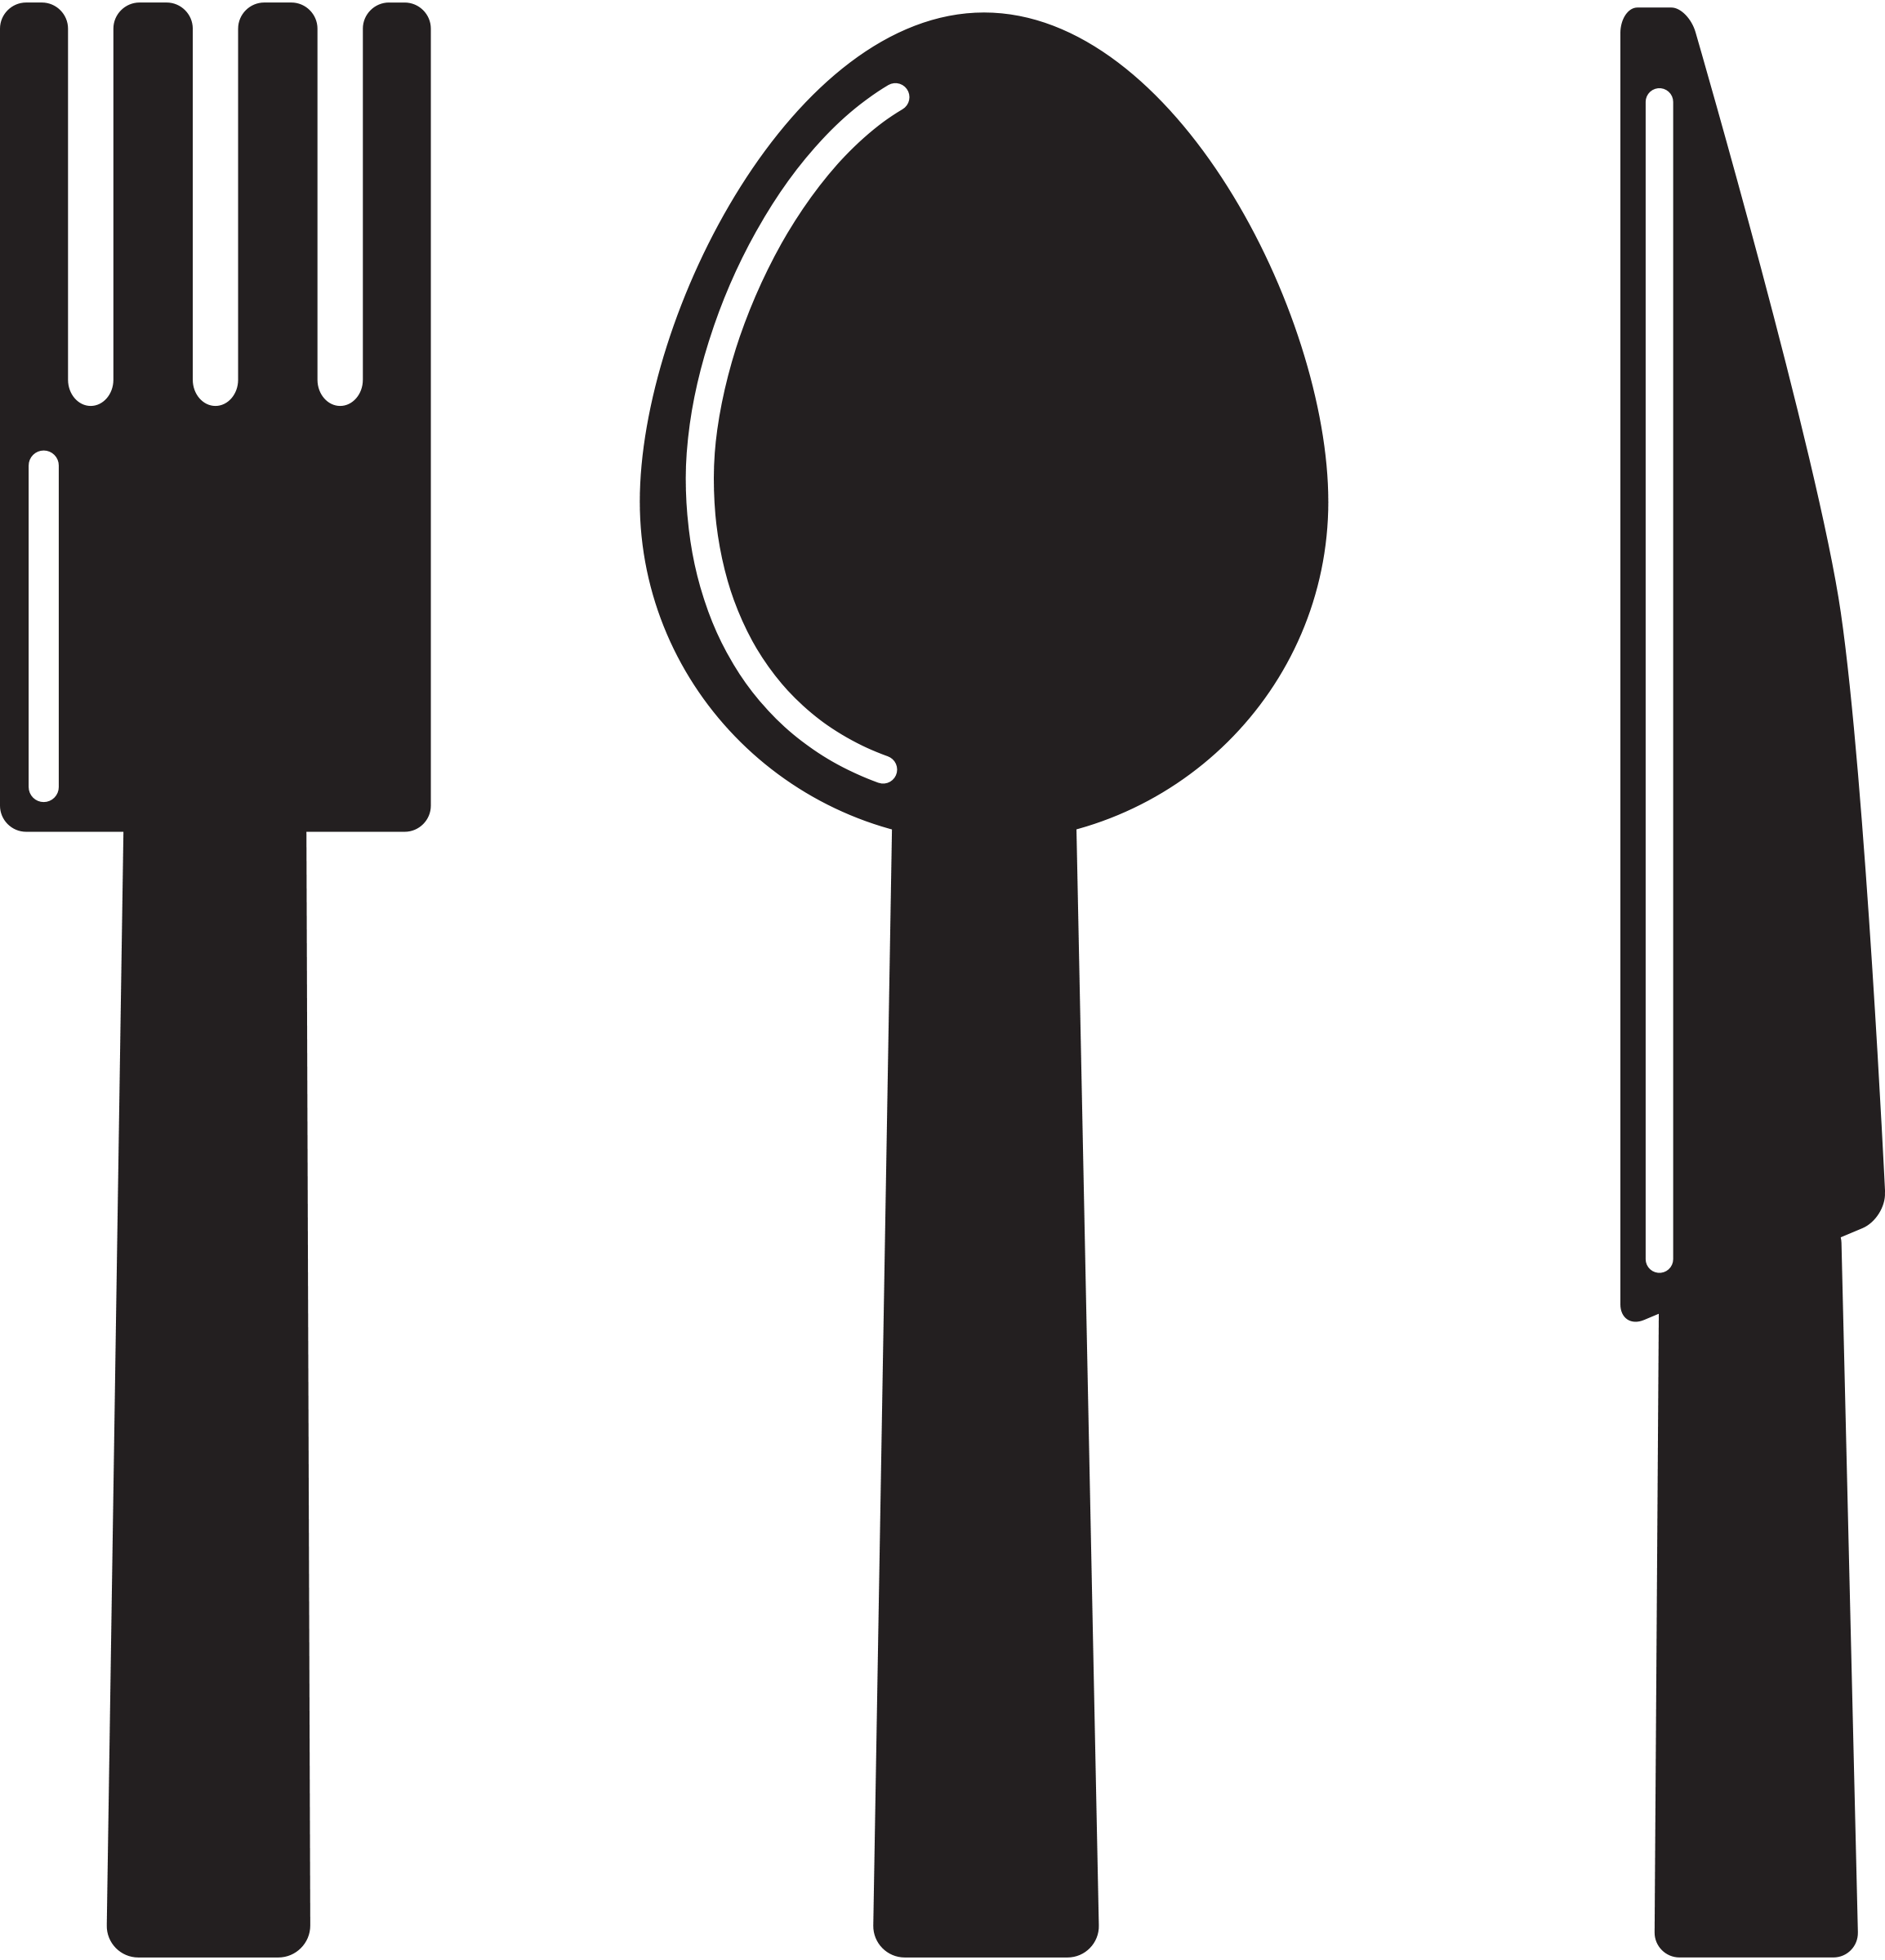 11 Spoon   Fork Png   Free Cliparts That You Can Download To You